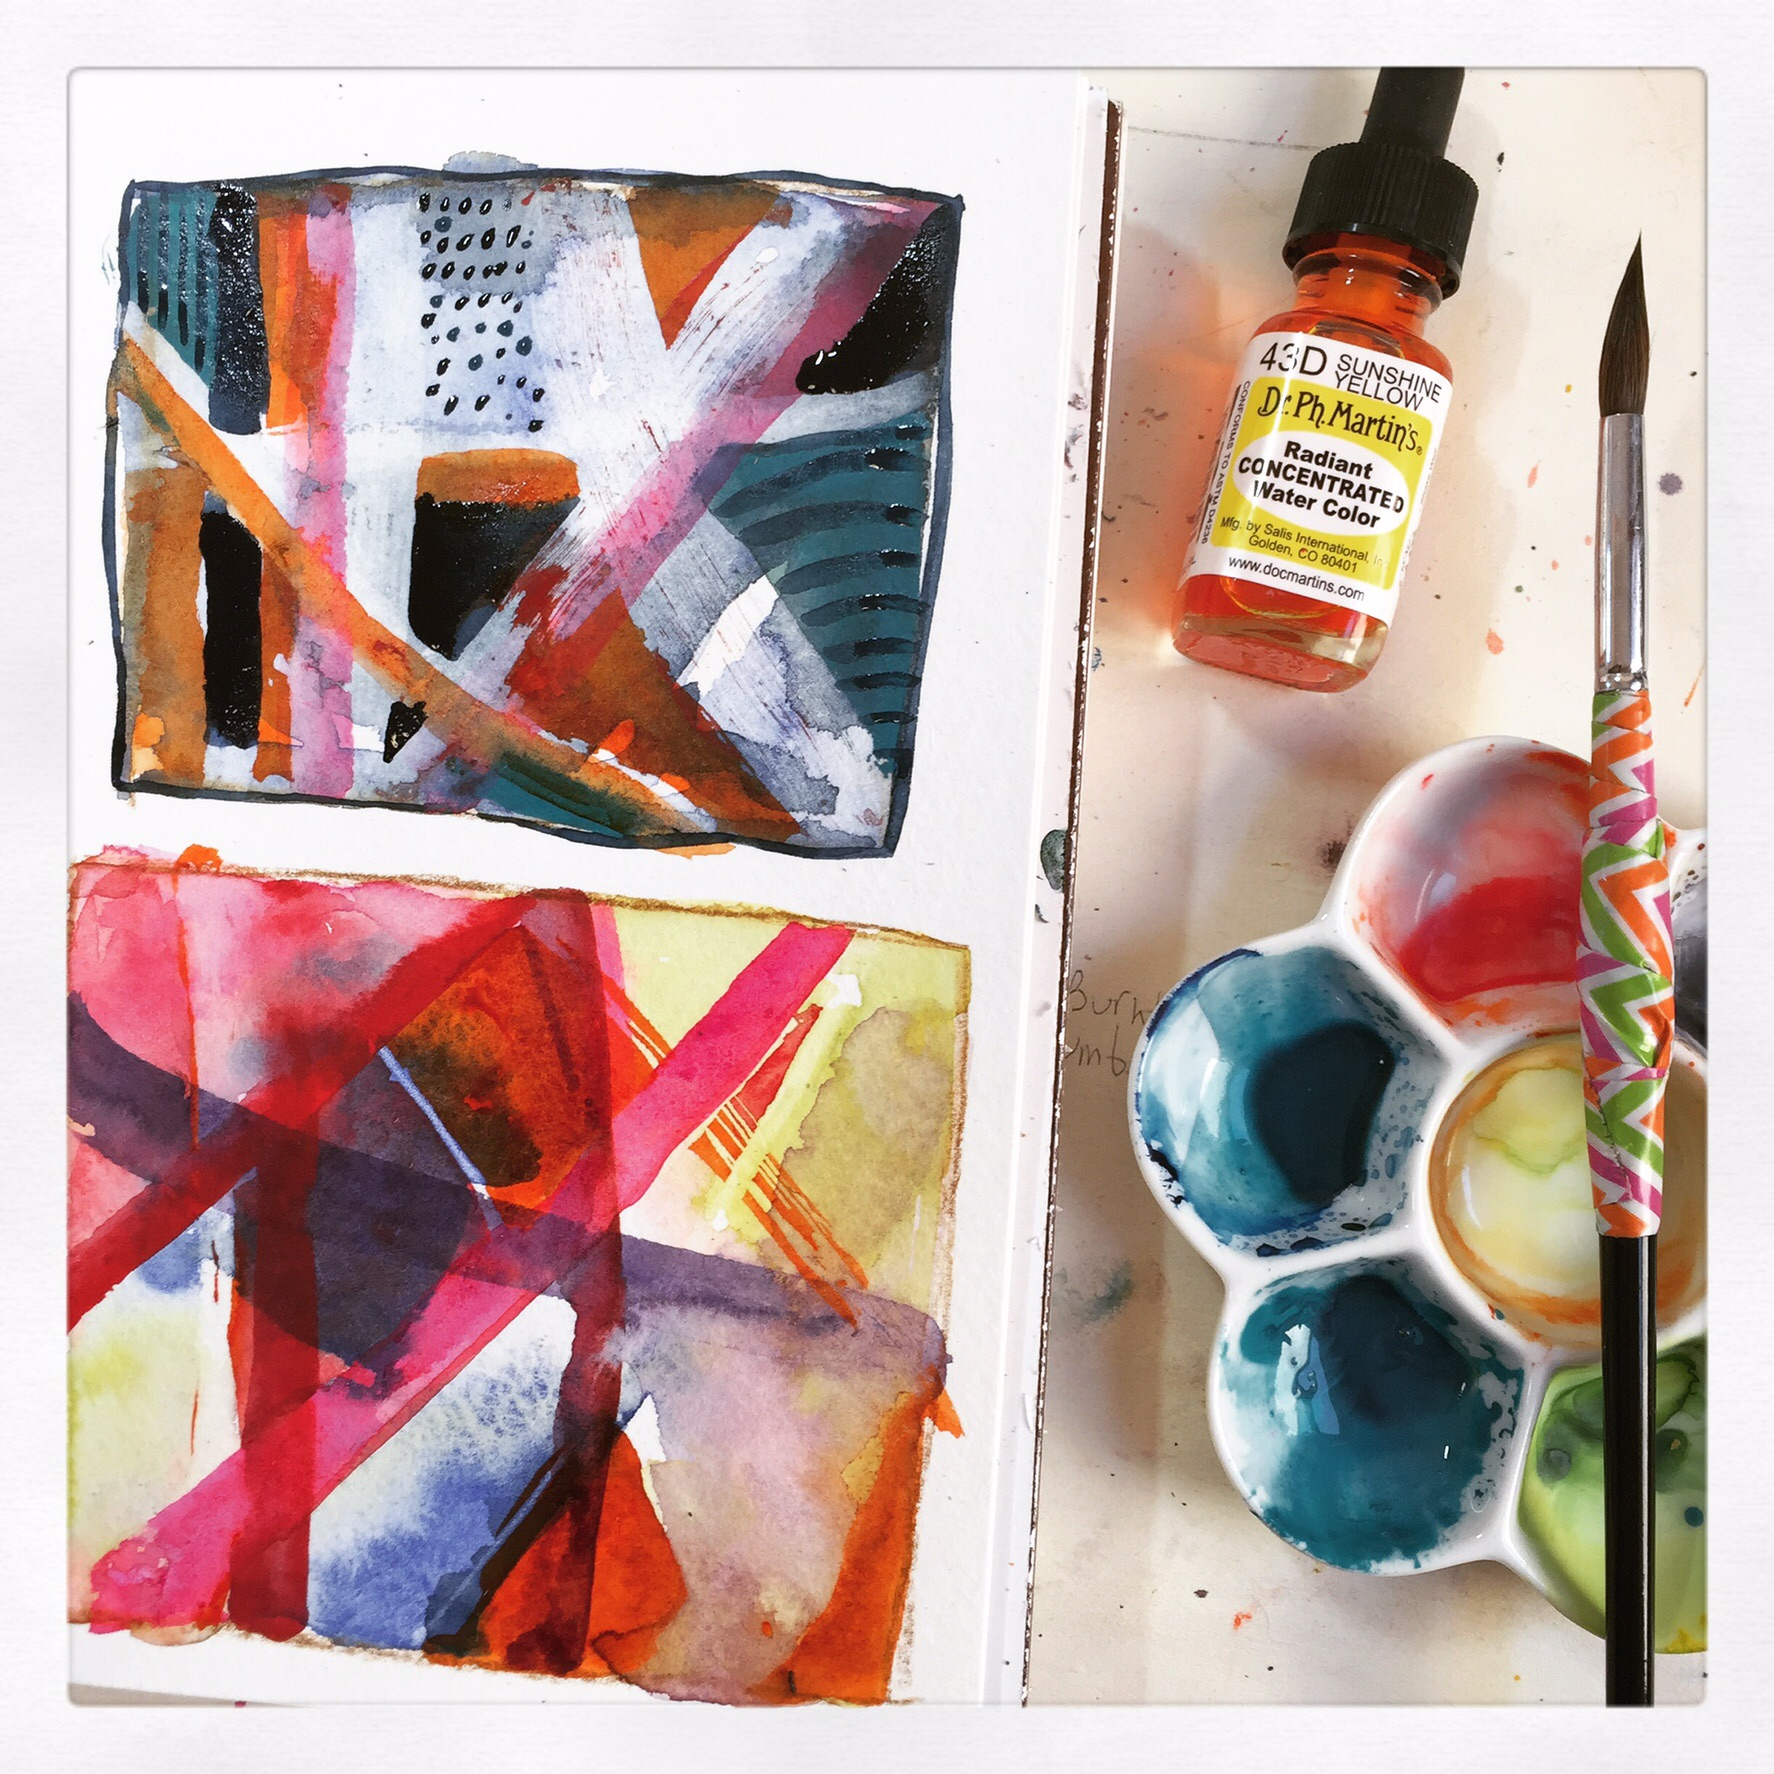 Sick day watercolor abstracts in my sketchbook while I sip tea with honey.